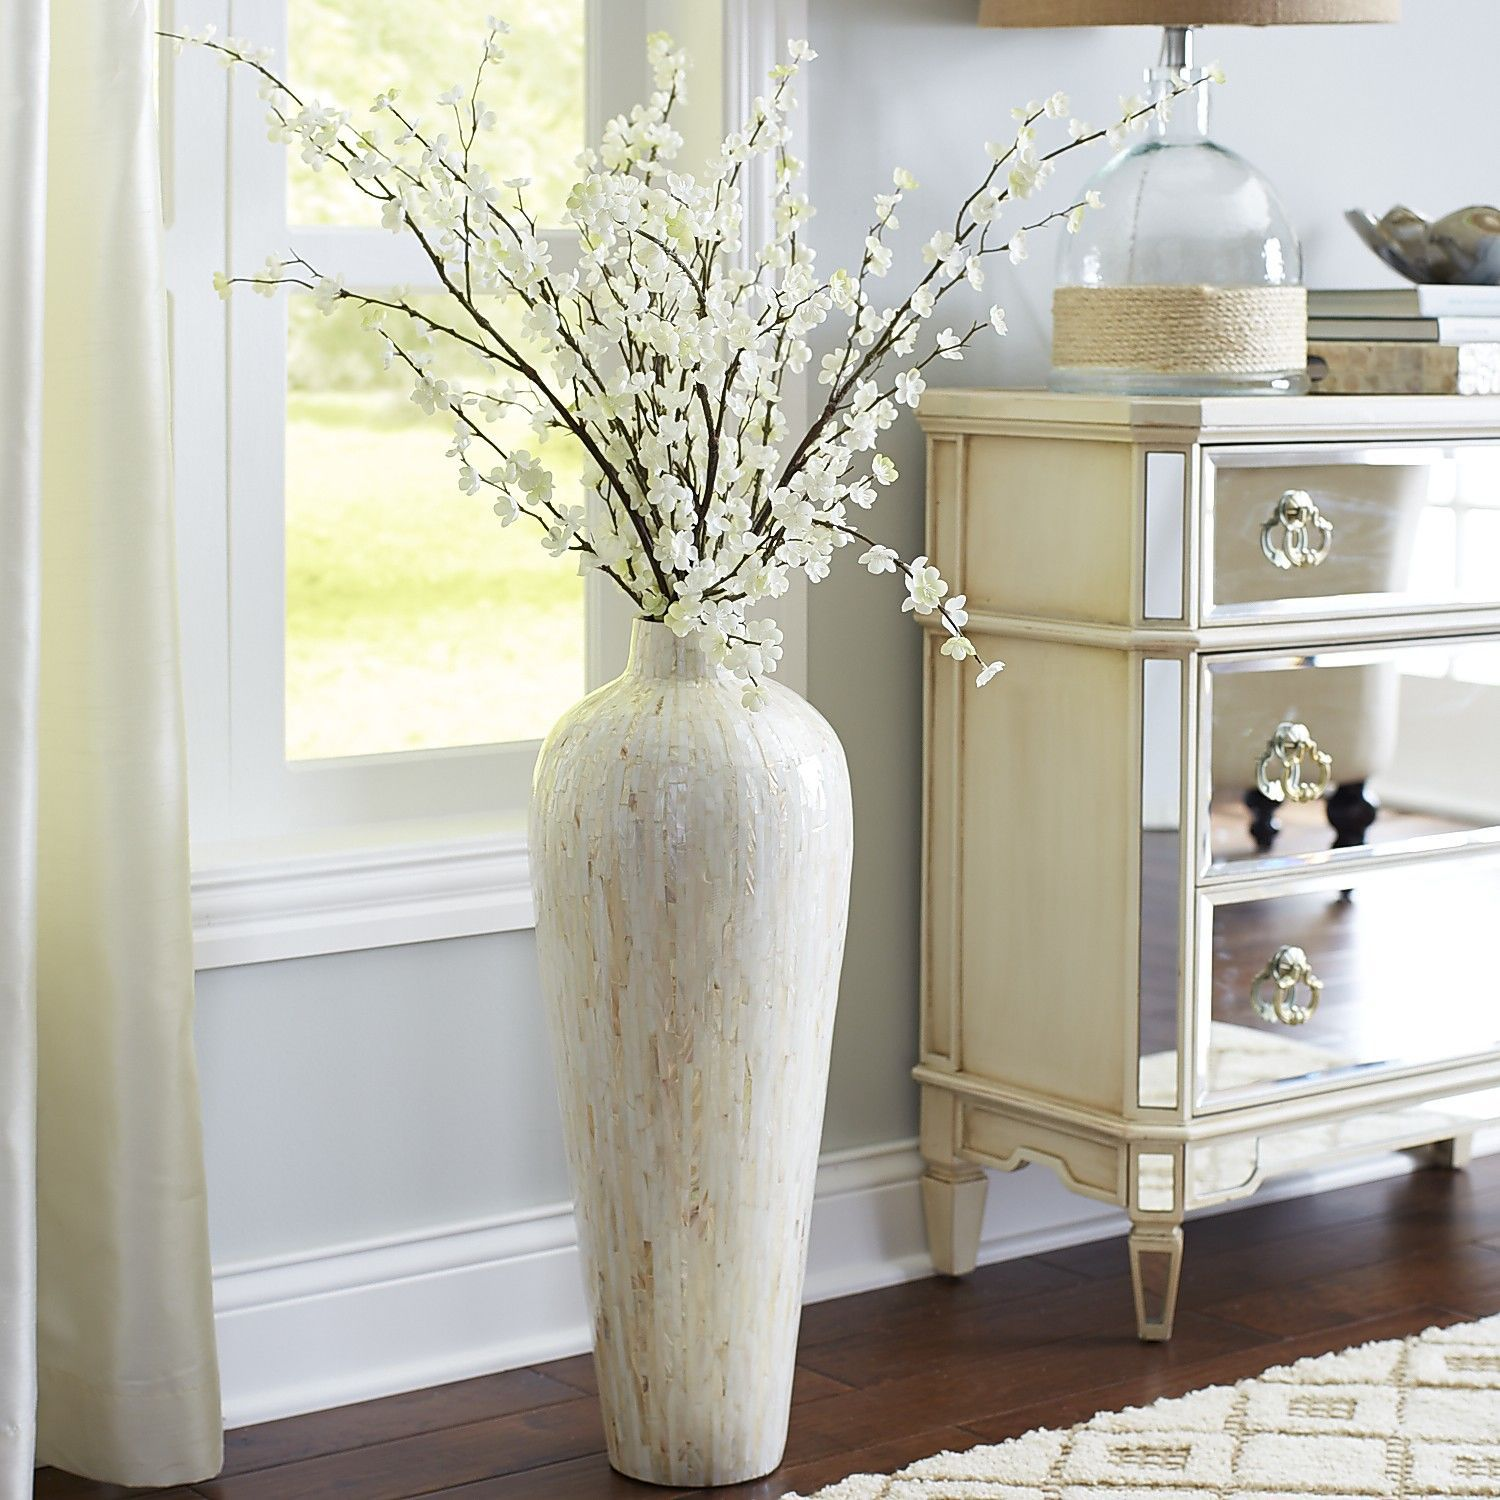 Best 25 Large Floor Vases Ideas On Pinterest Floor Vase Decor Floor Vases And Tall Floor Vases